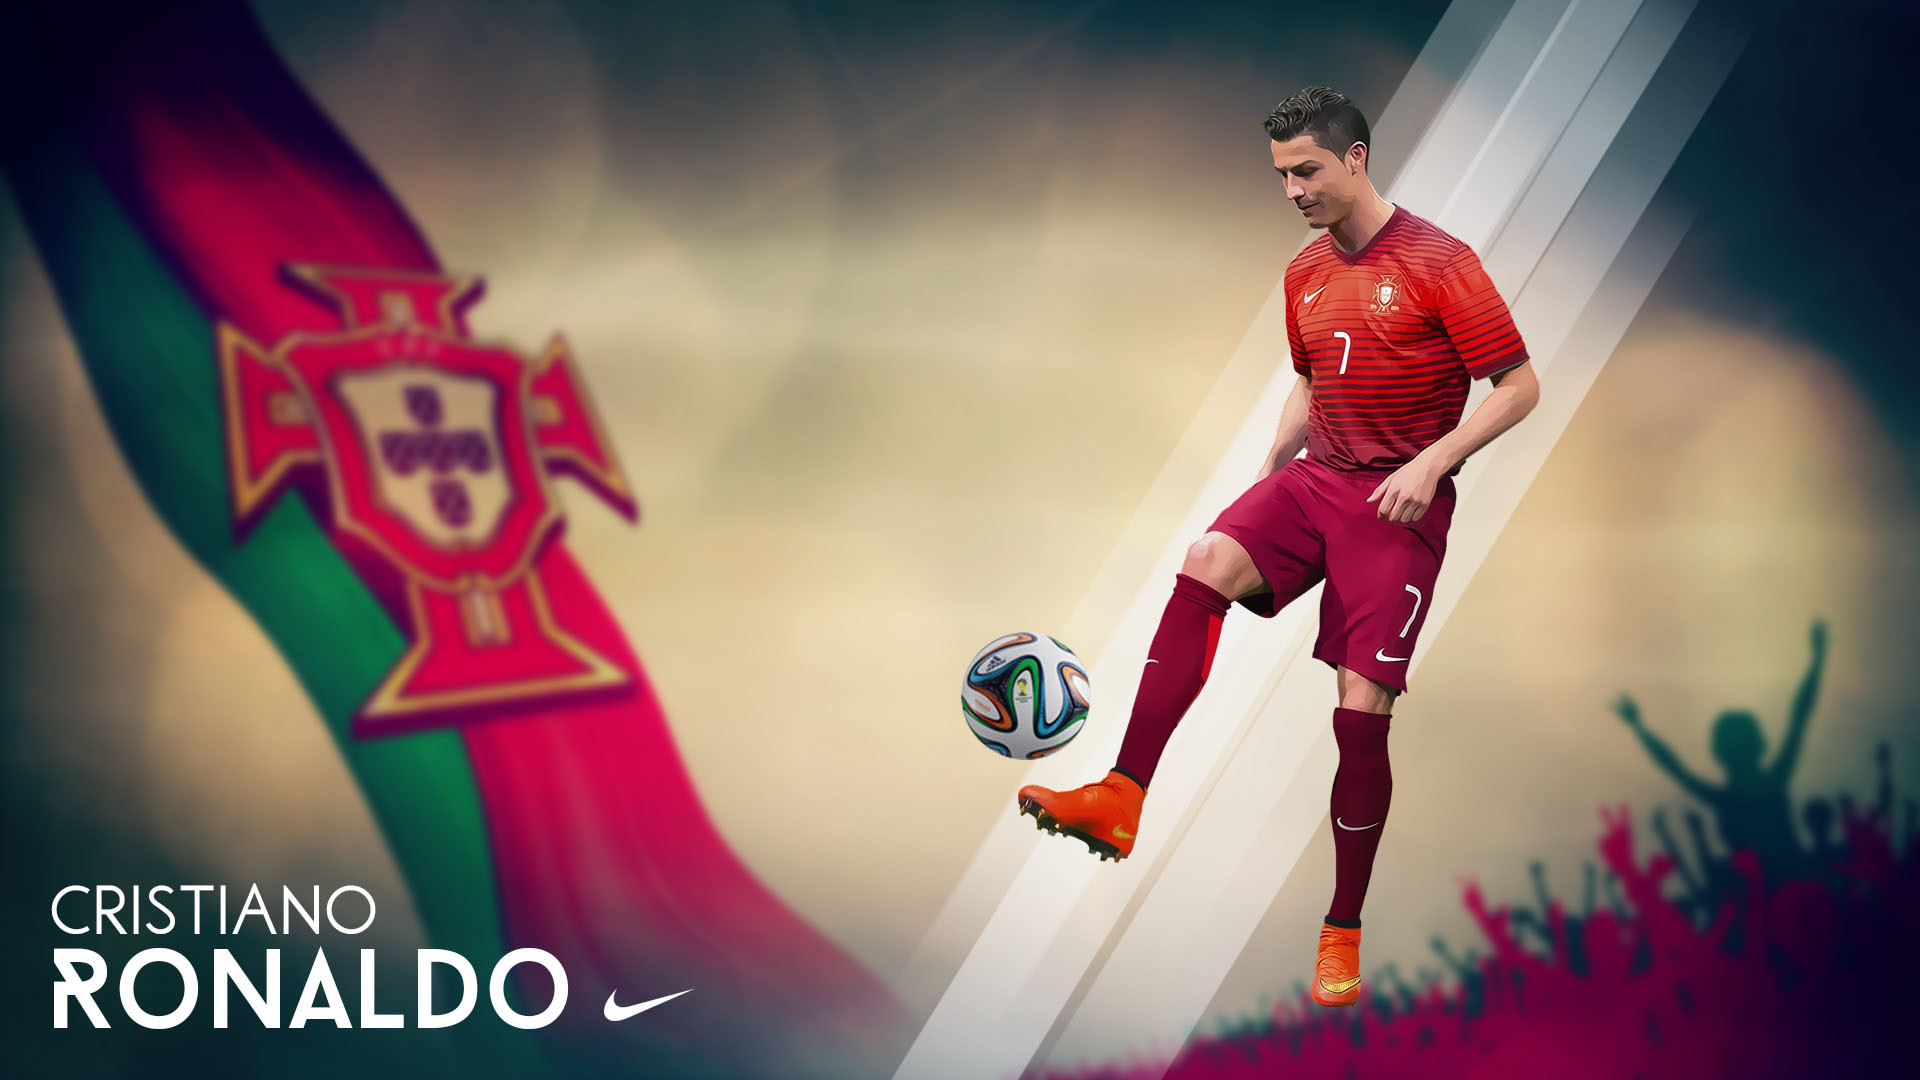 1920x1080 Cristiano Ronaldo Portugal FIFA World Cup 2014 wallpaper